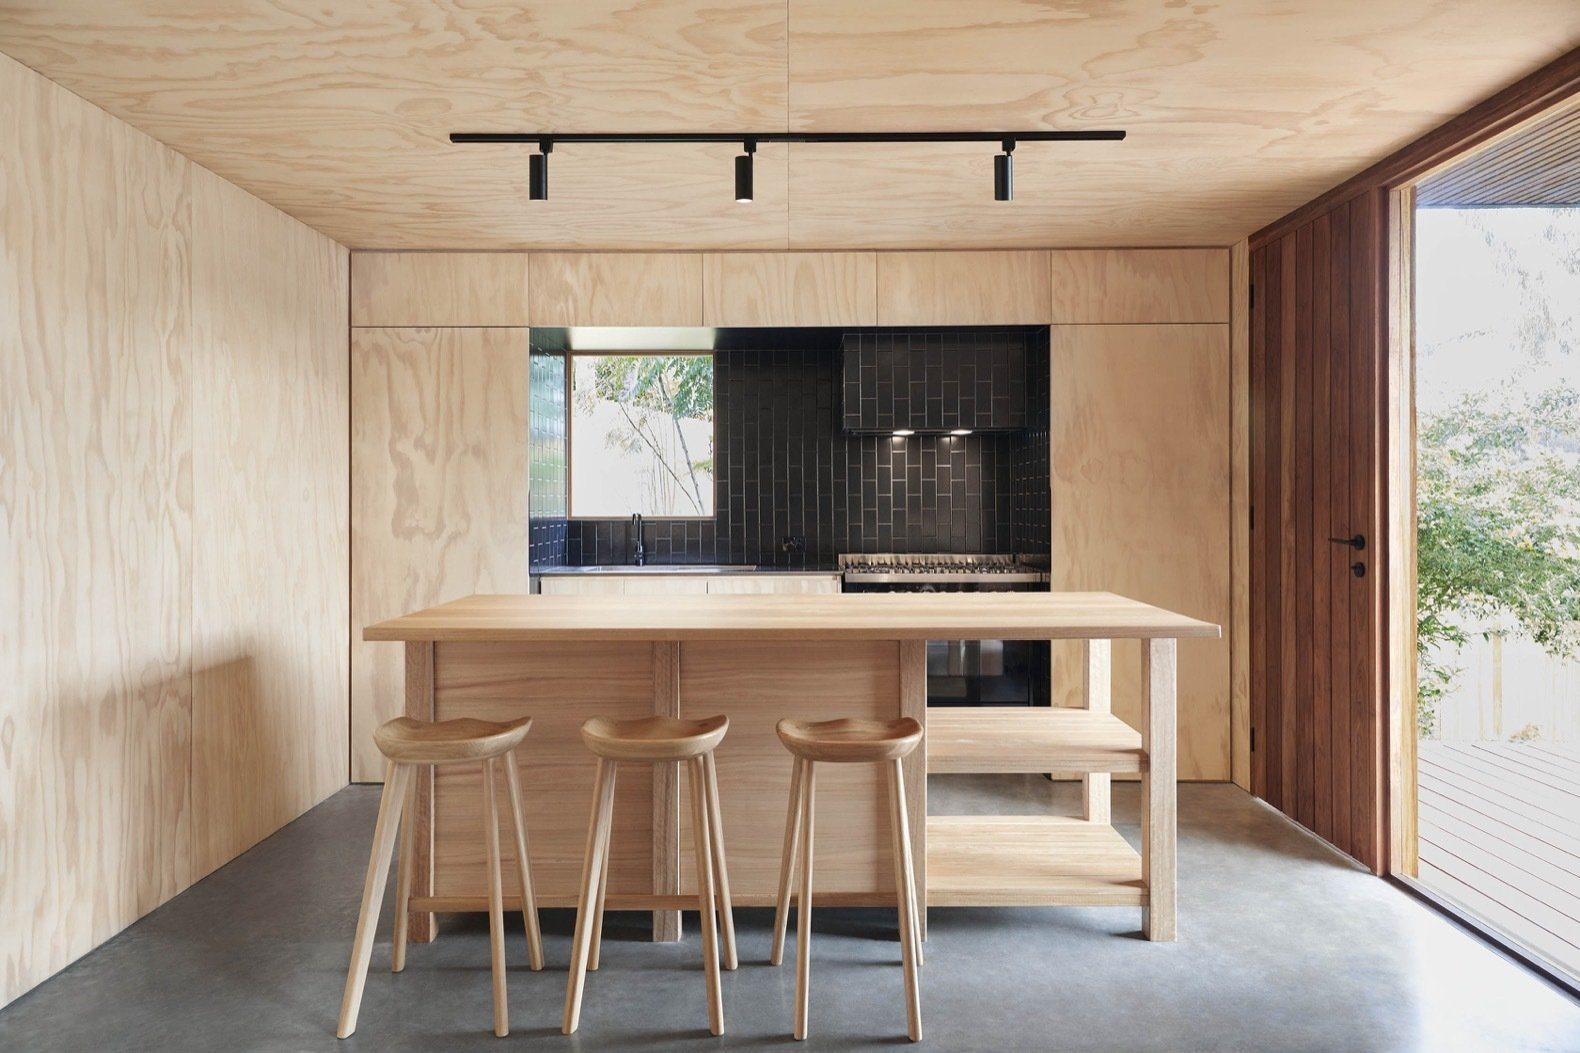 OCM House by Studio Jackson Scott plywood kitchen